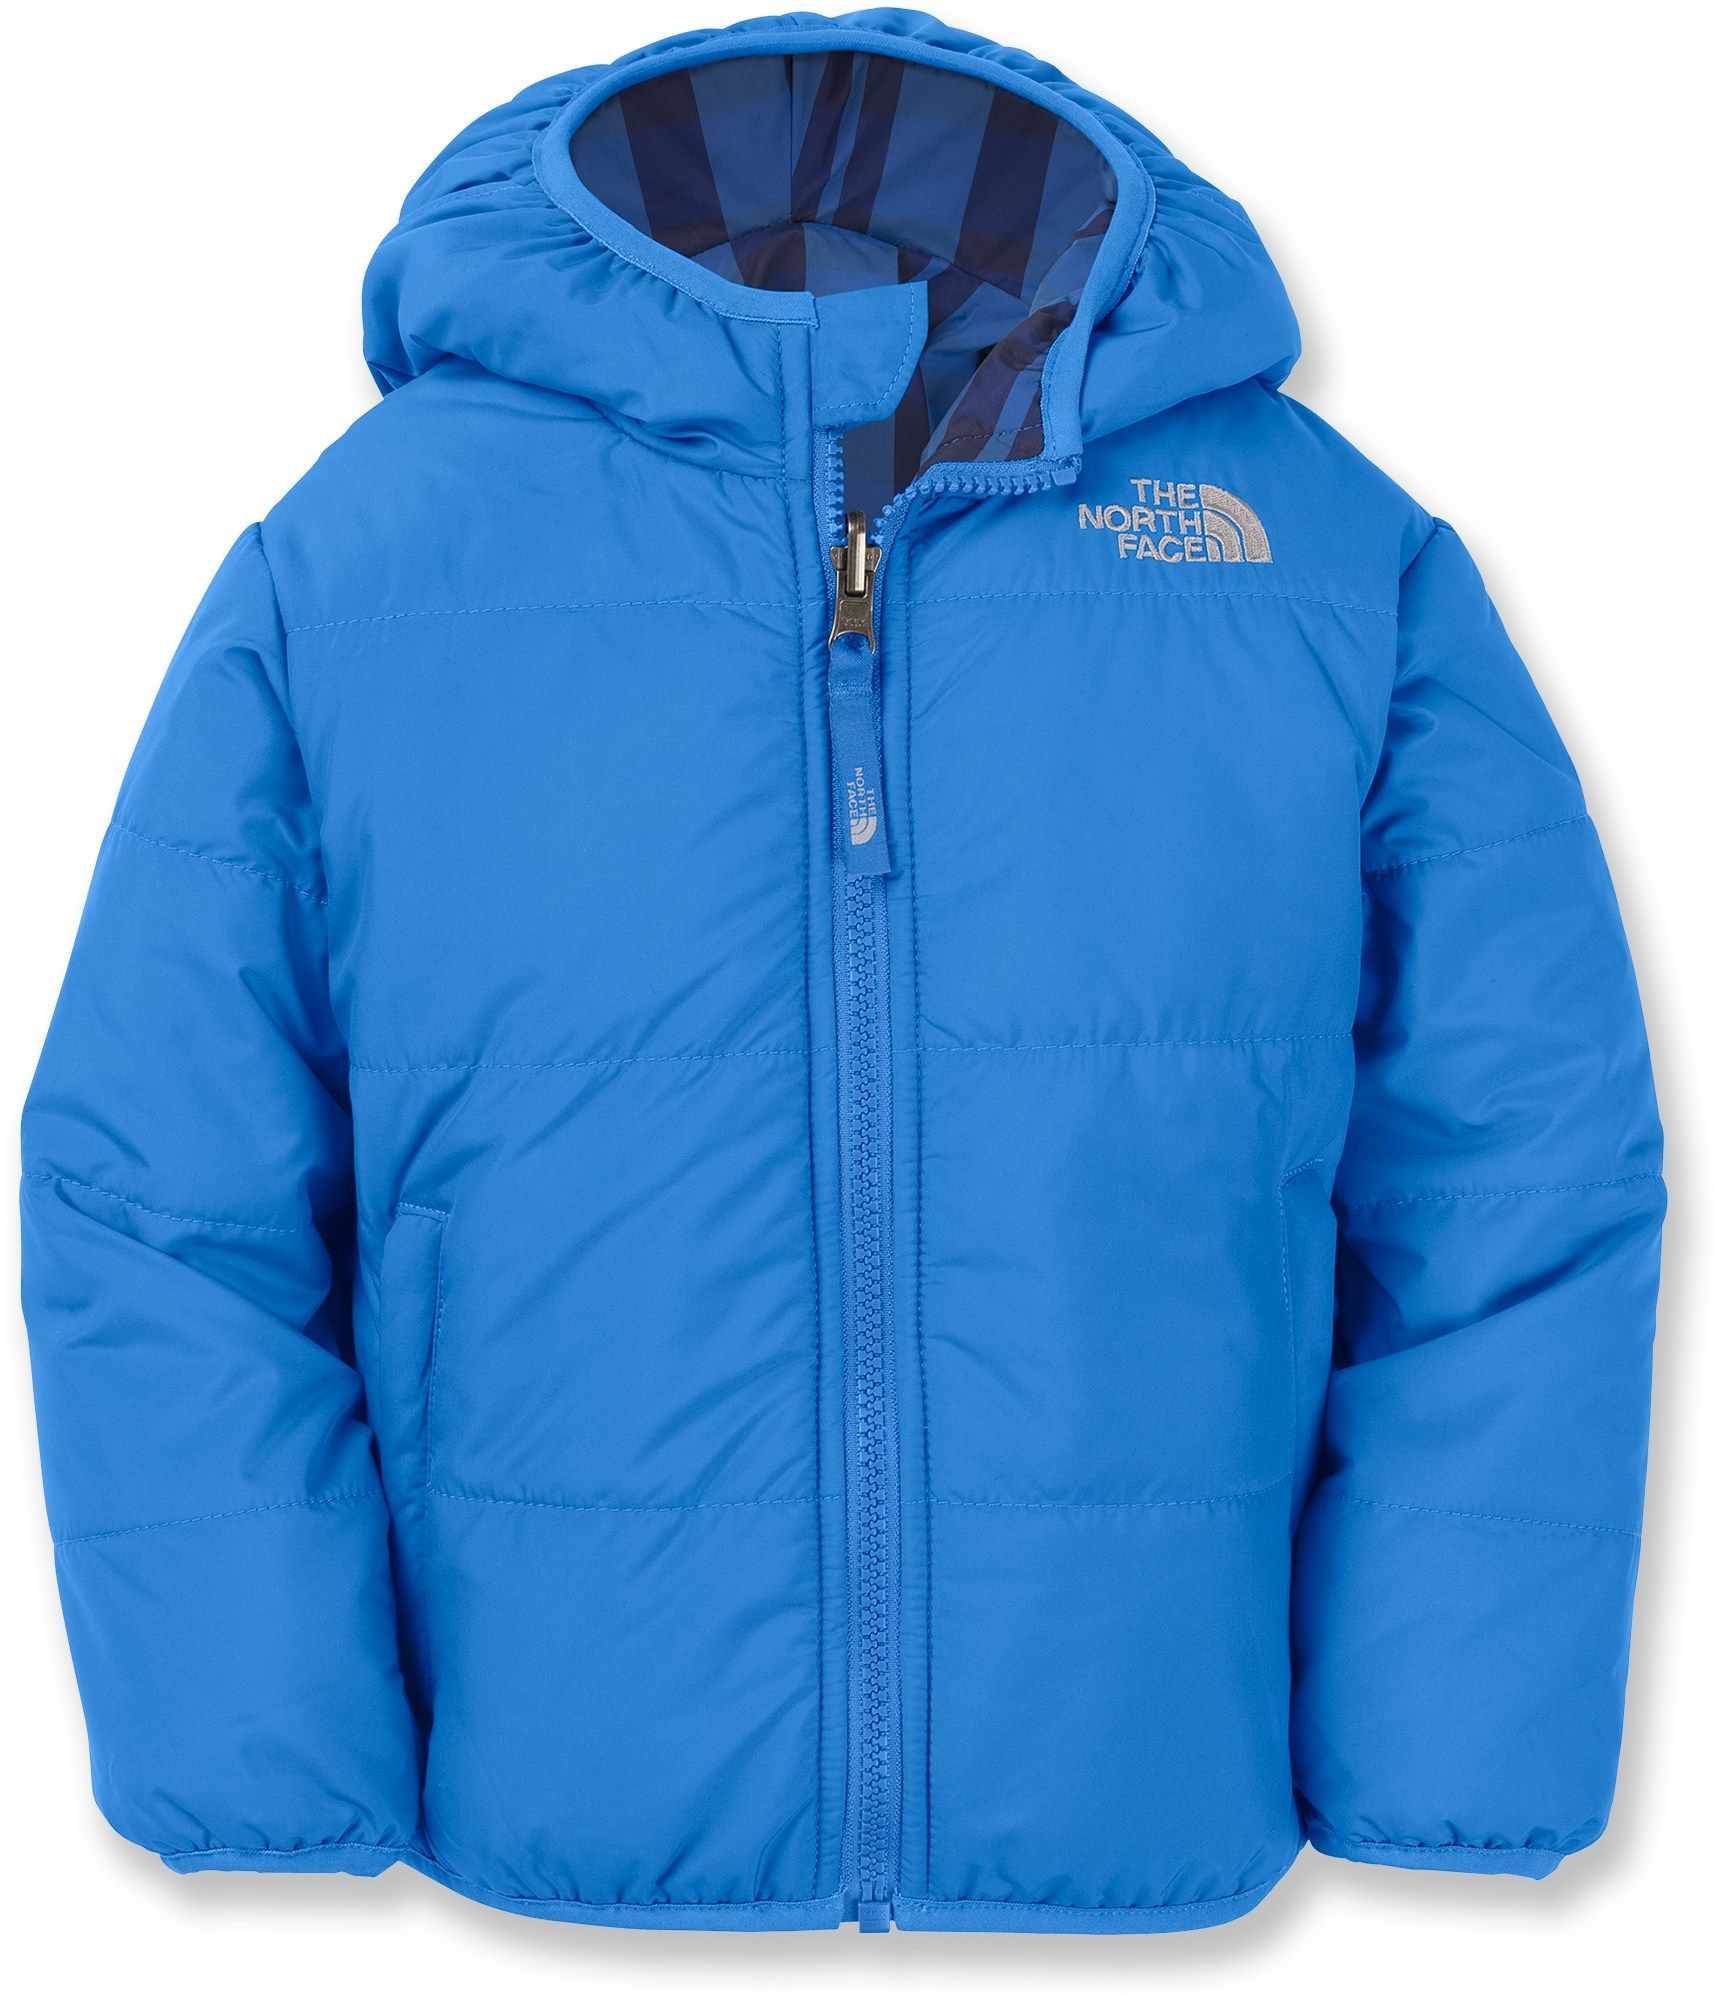 Jack 3t Blue The North Face Perrito Reversible Insulated Jacket Toddler Boys Free Shipping At Rei Com Reversible Jackets Jackets Insulated Jackets [ 2000 x 1719 Pixel ]